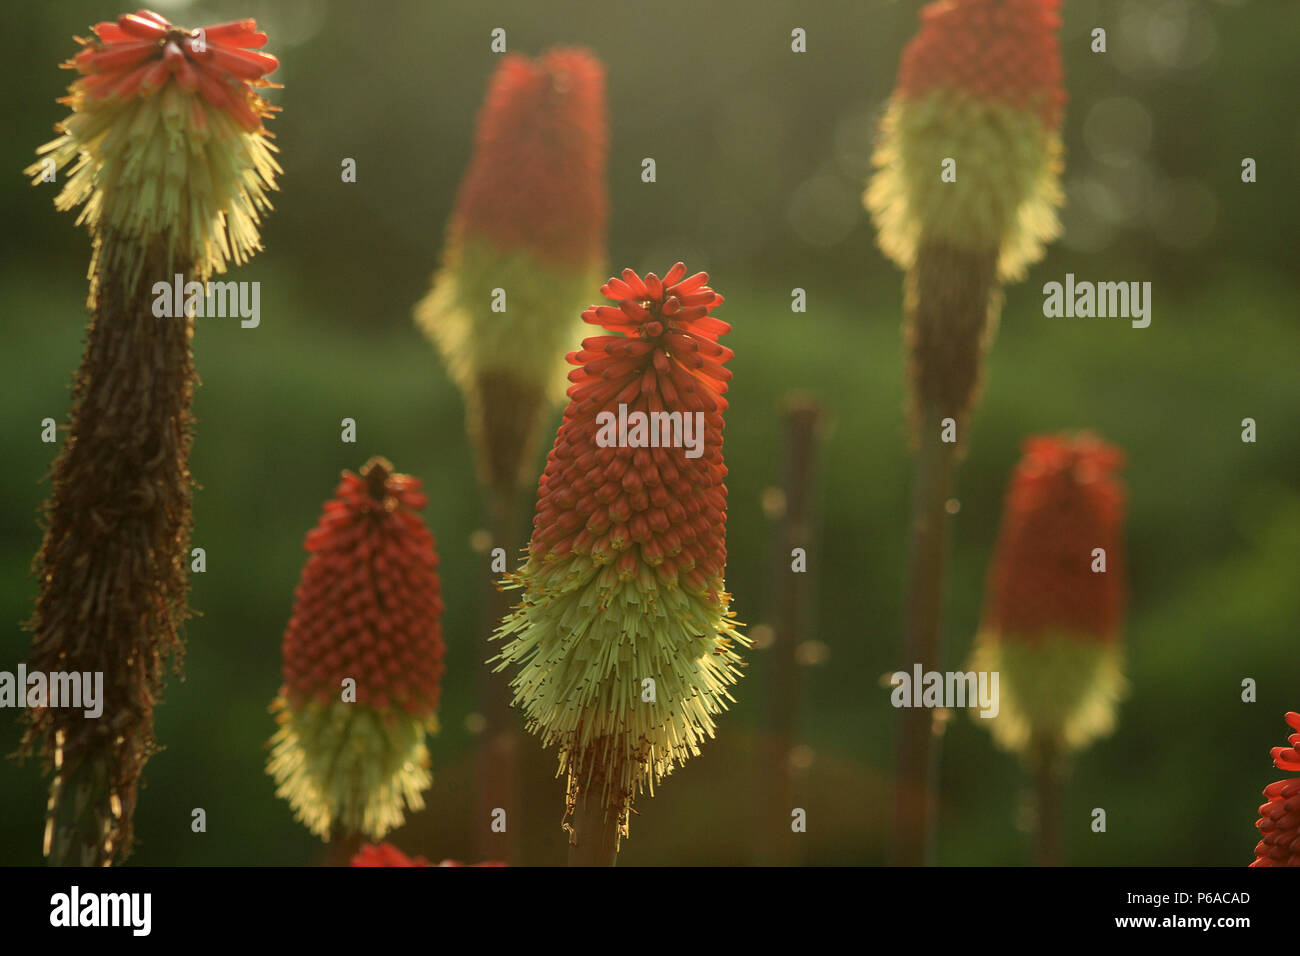 Close-up of Kniphofia flowers Stock Photo